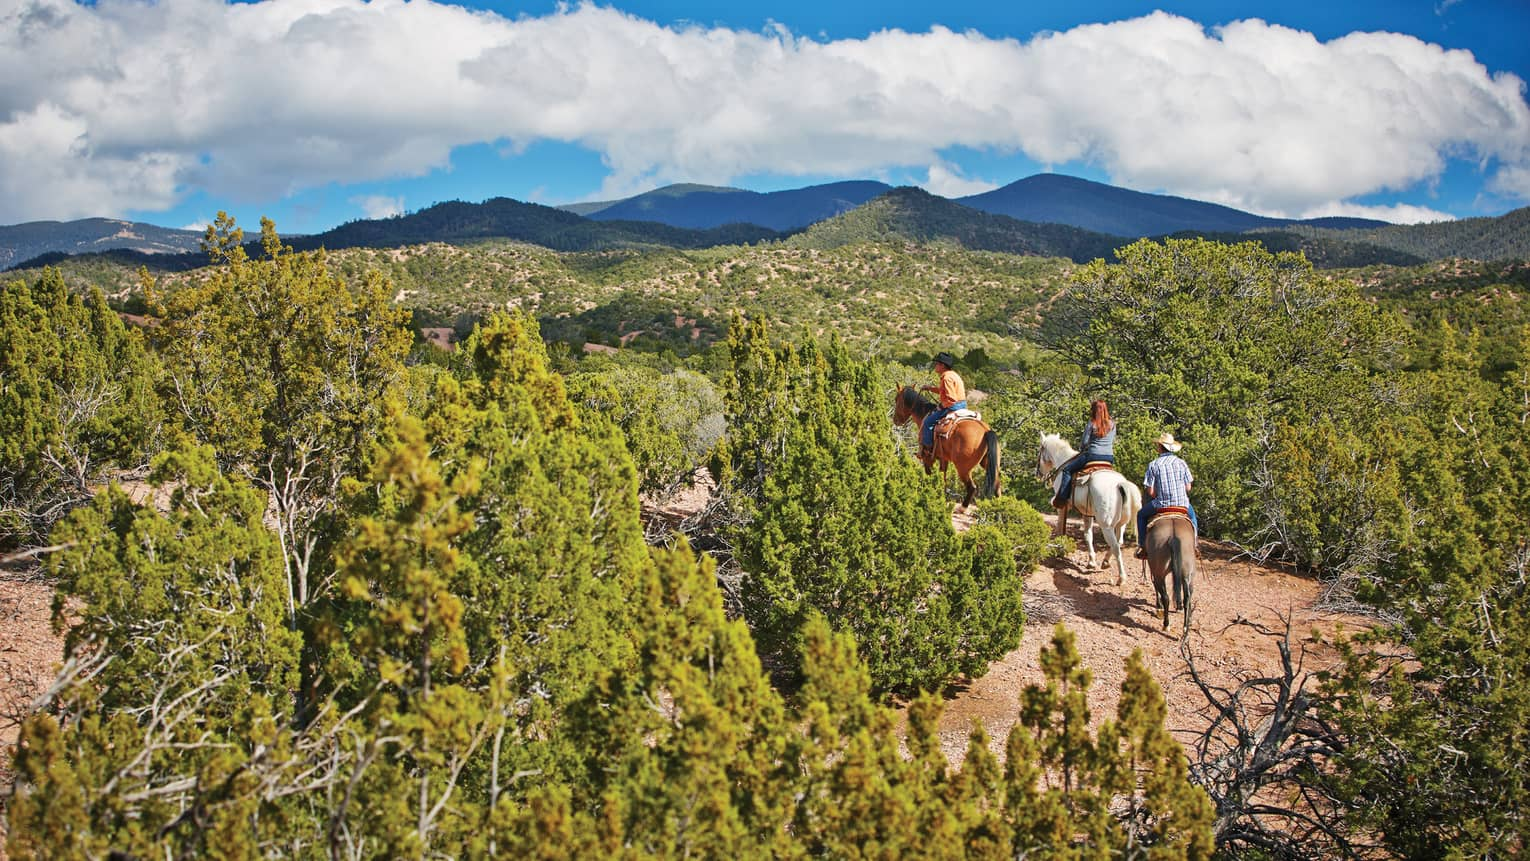 Three people horseback riding through trail, brush on desert mountain